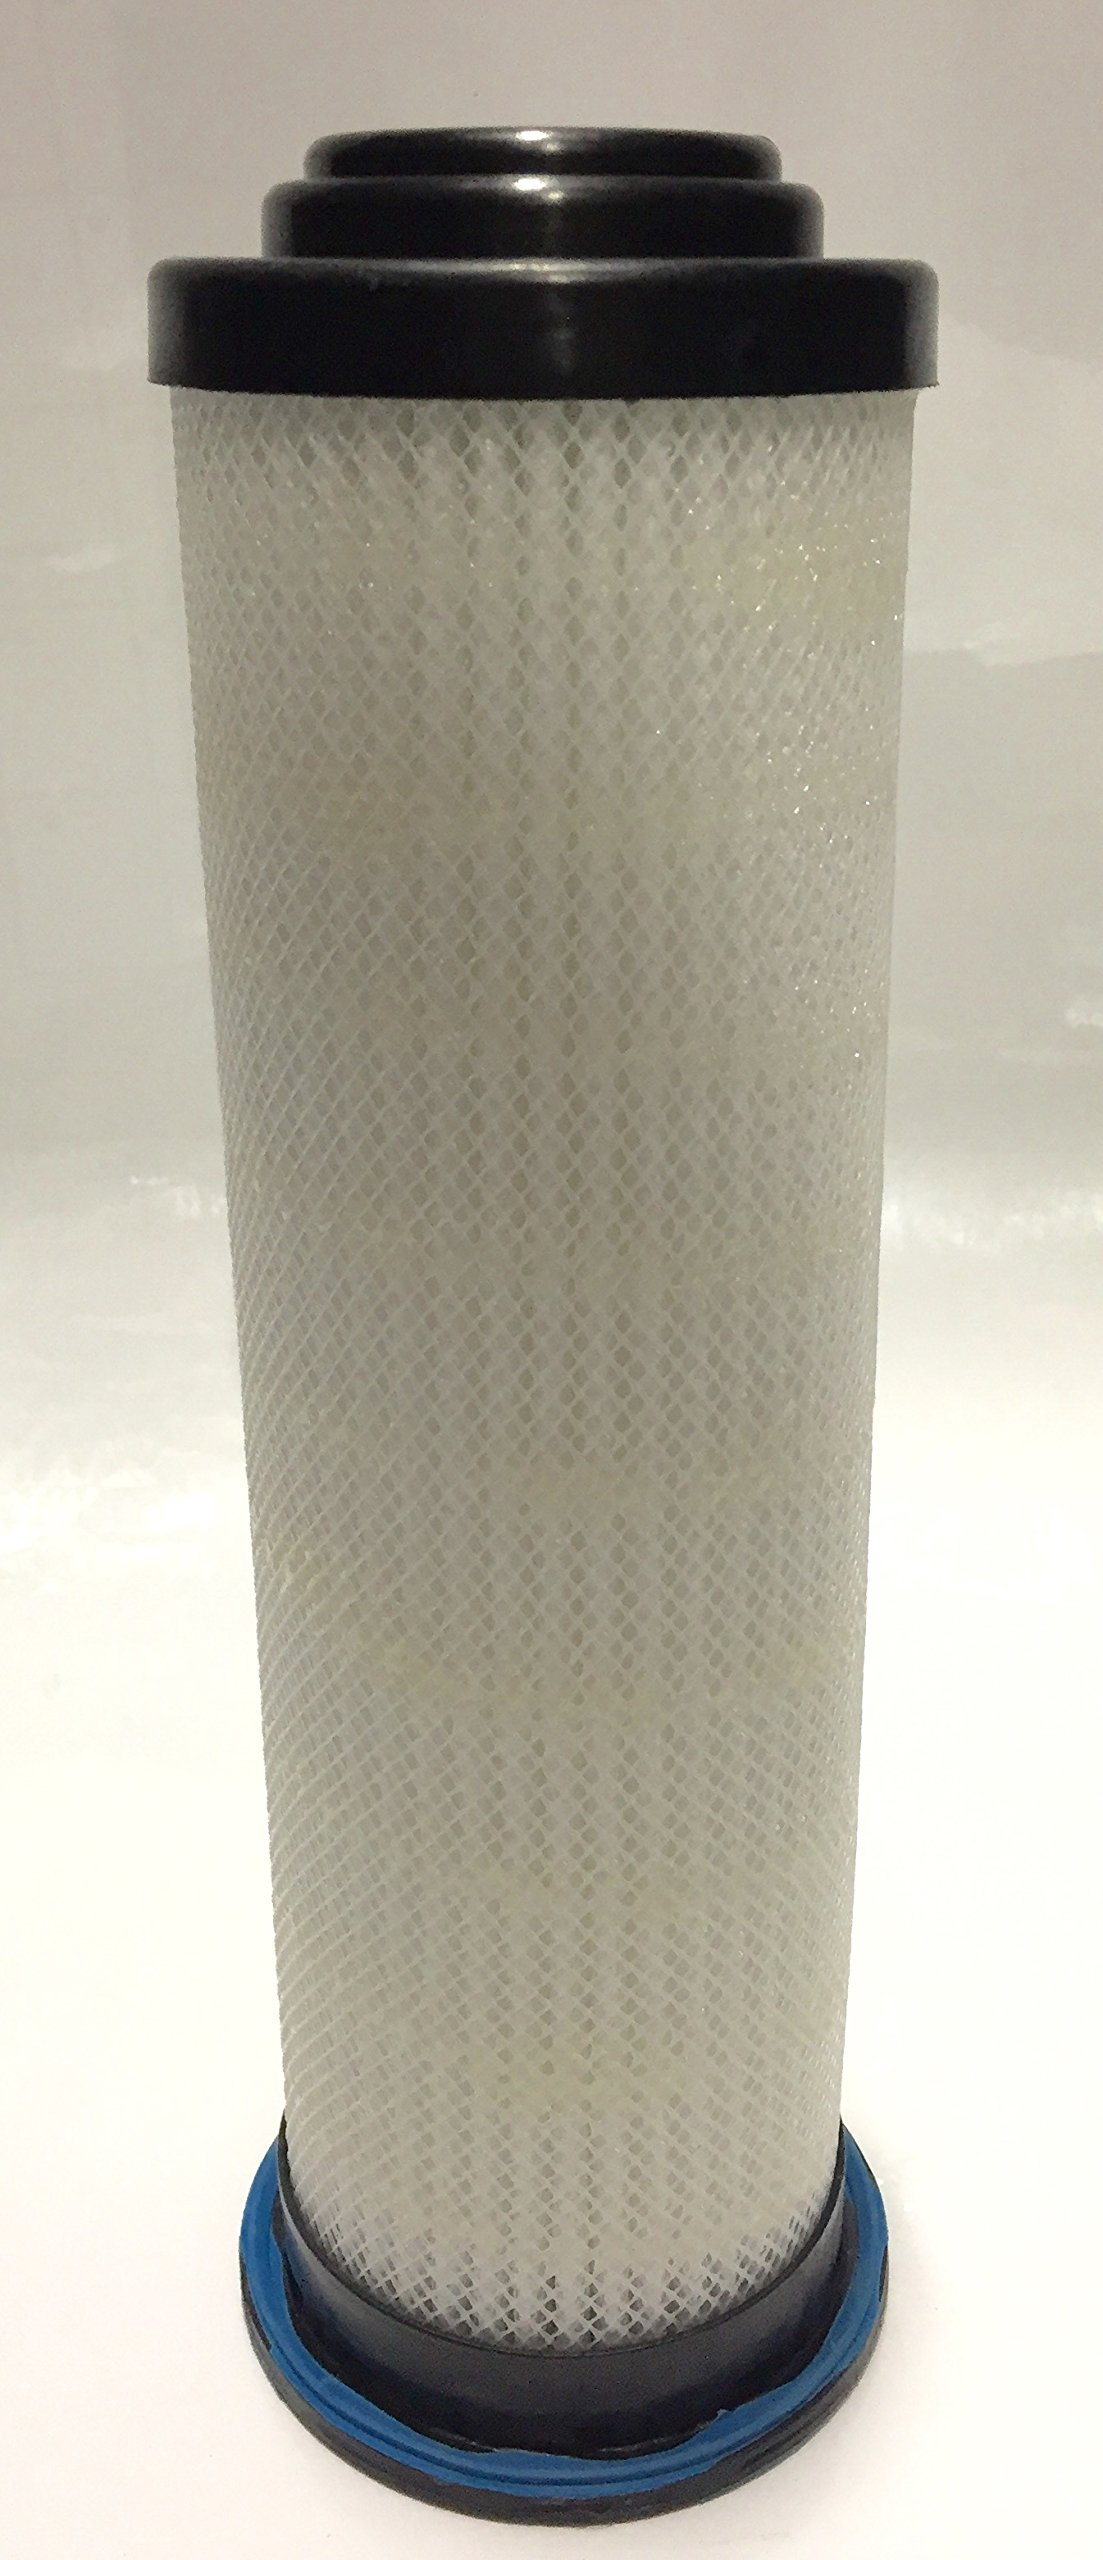 02250155-709 Sullair Replacement Oil Filter Element by Edmac